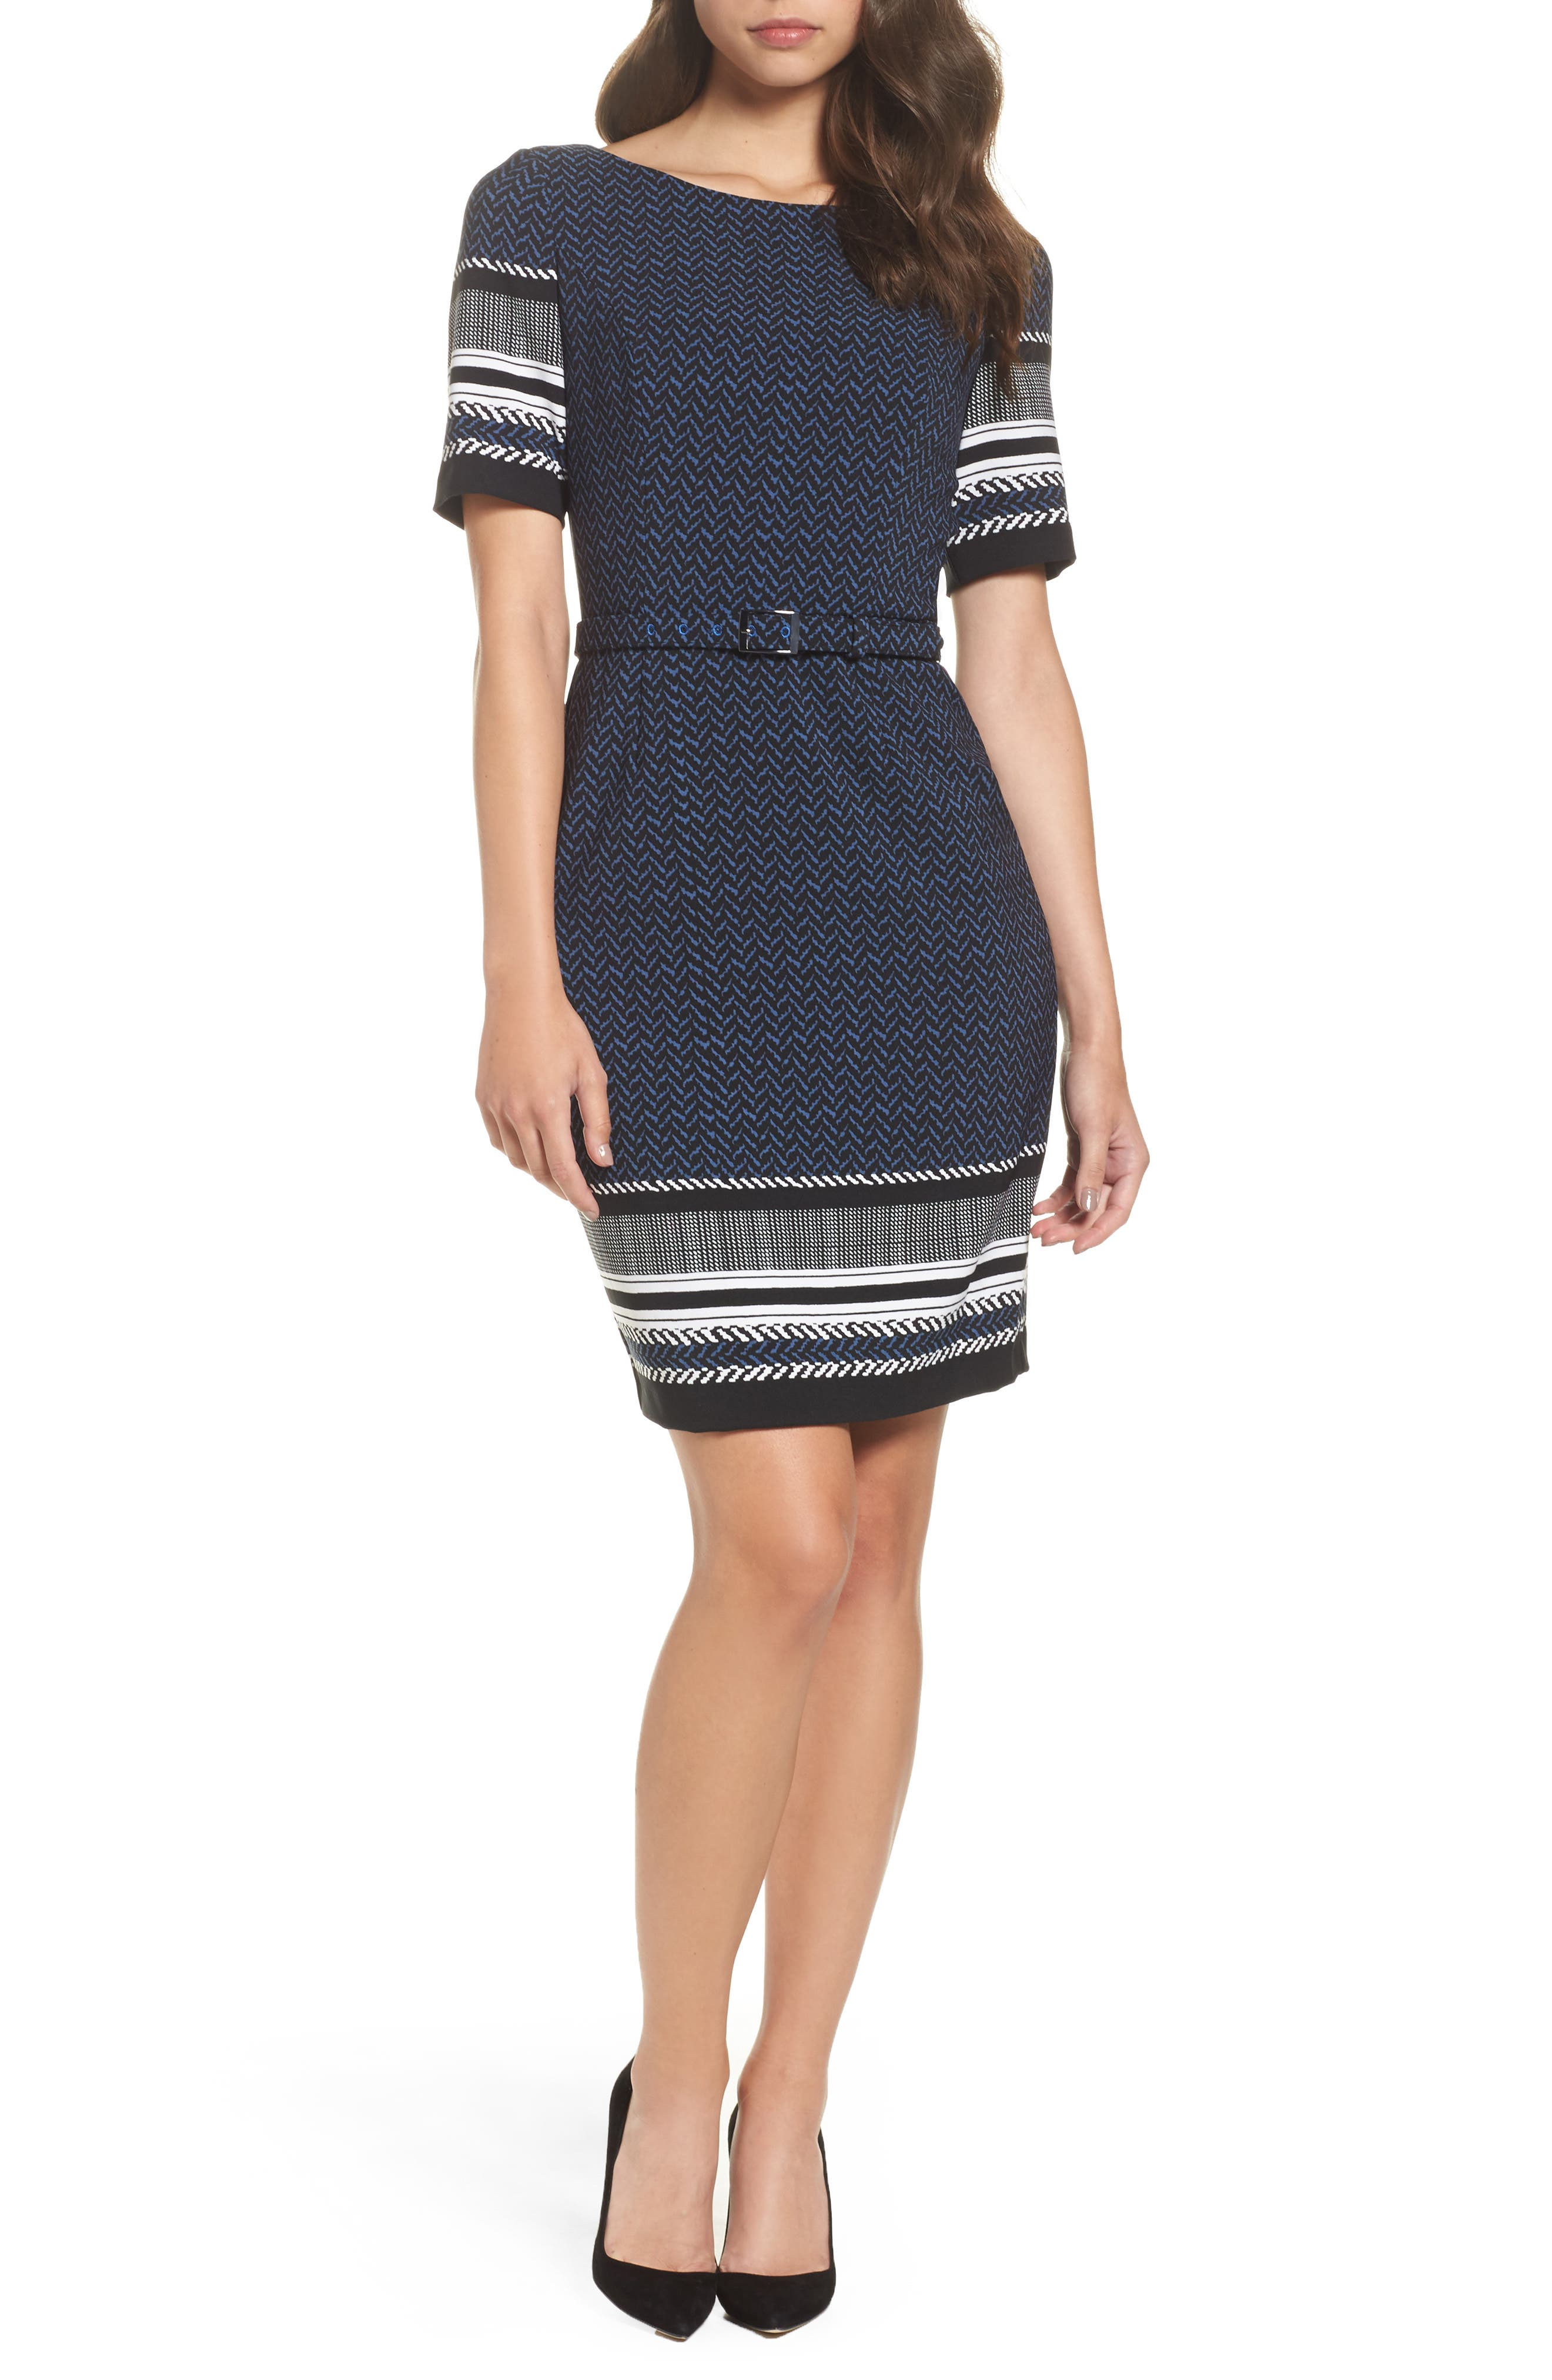 Main Image - Adrianna Papell Mixed Herringbone Sheath Dress